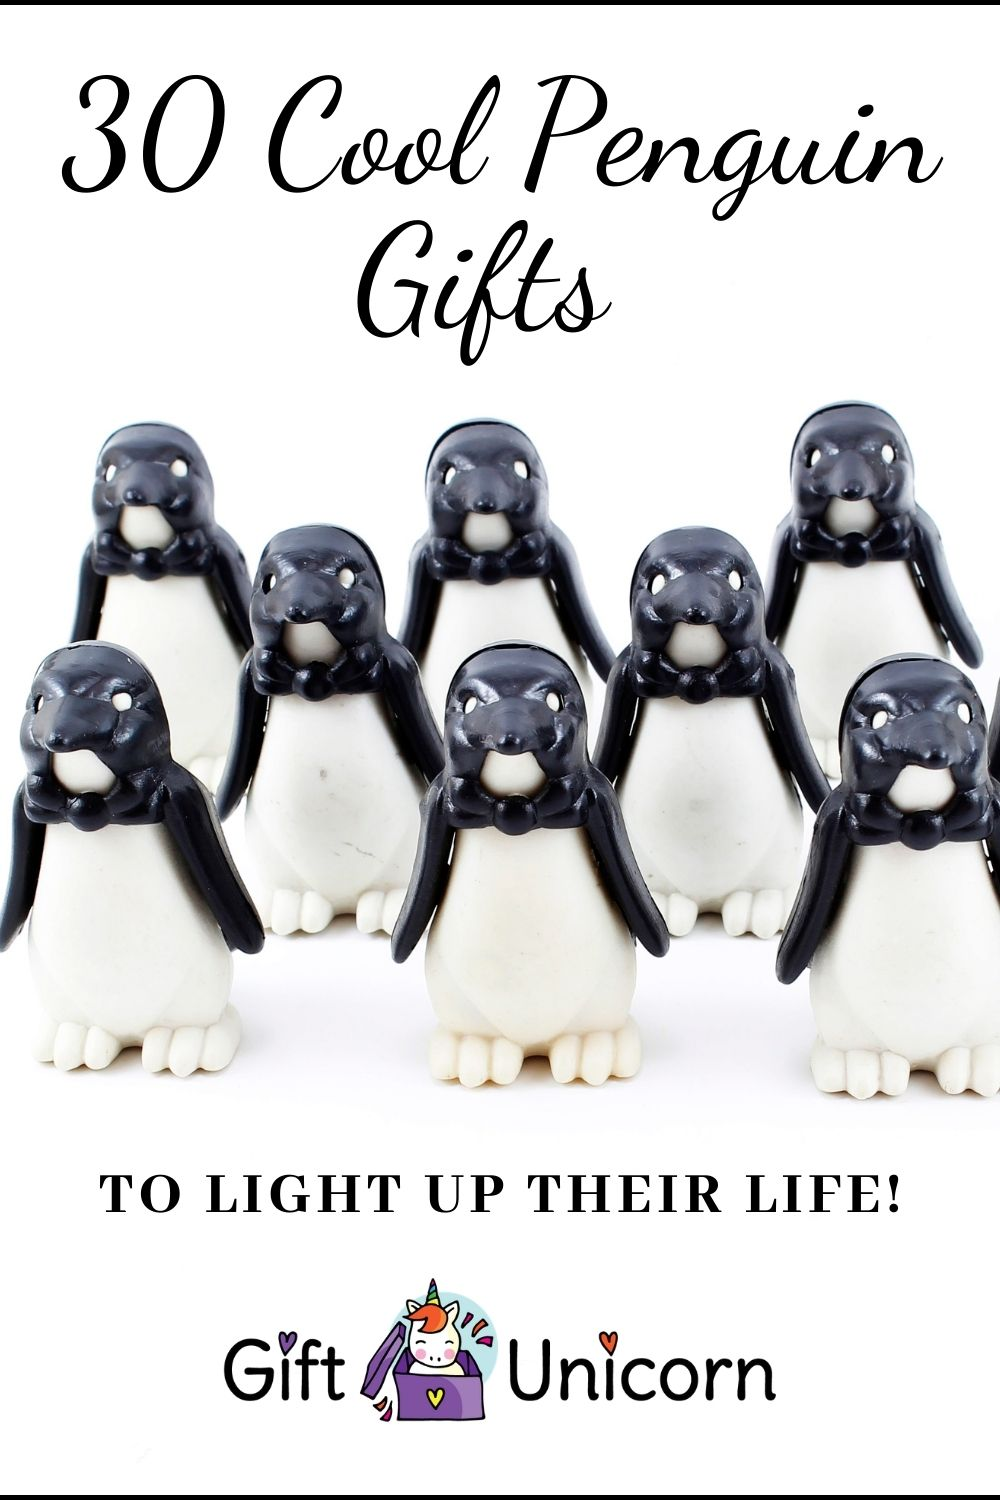 penguin gifts pin image